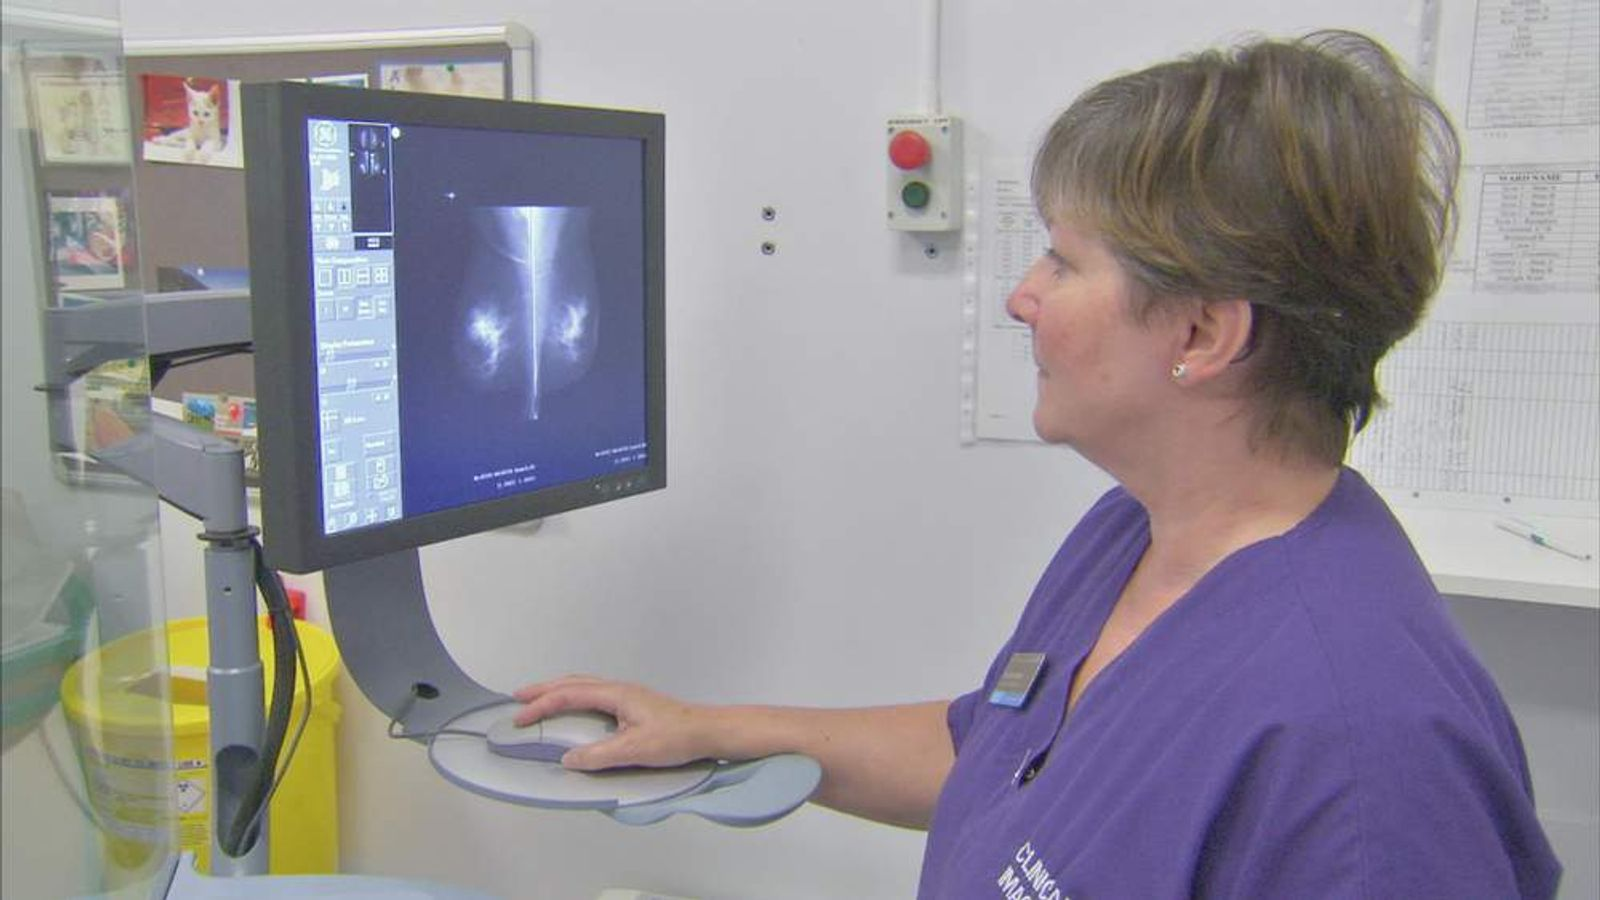 Mammogram screening procedure for breast cancer